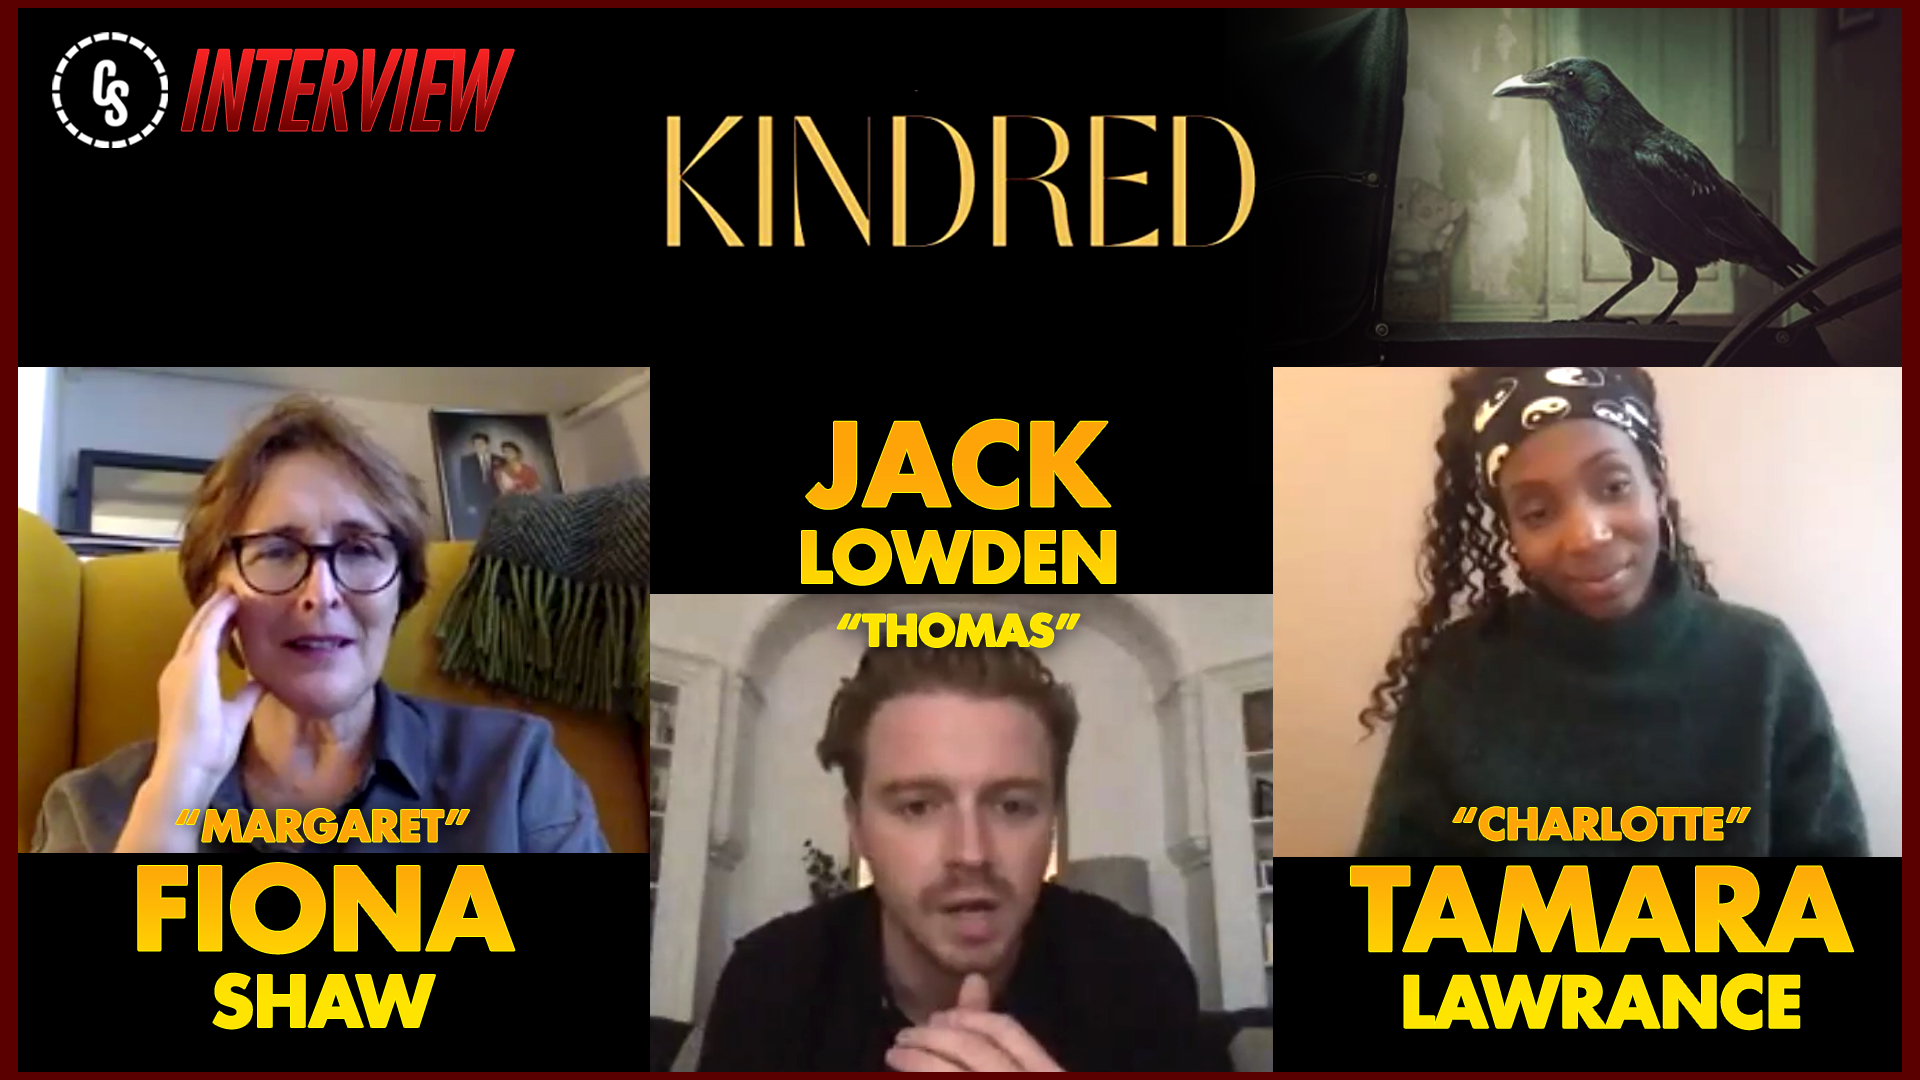 CS Video: Kindred Interview With Stars Lawrance, Lowden & Shaw